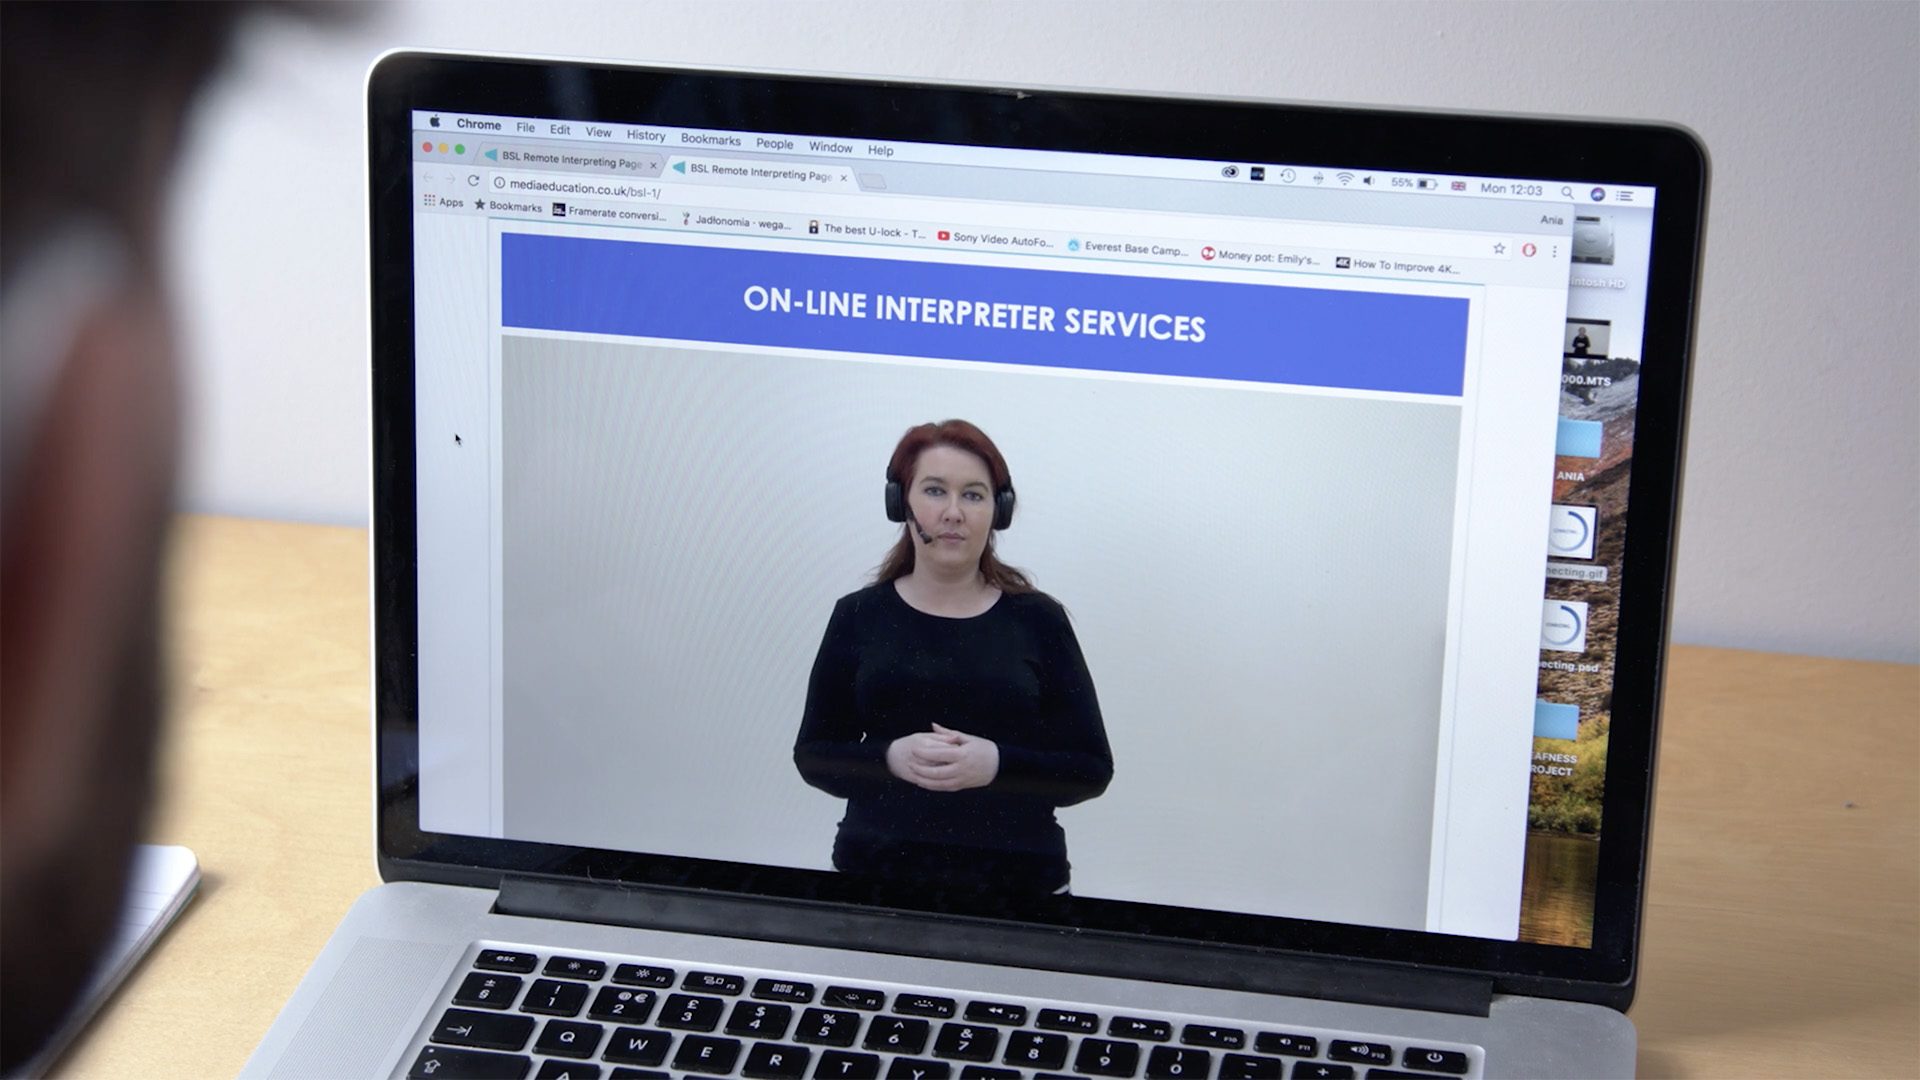 Over the shoulder of a person wearing hearing aids, a computer with an online BSL interpreter service open on screen